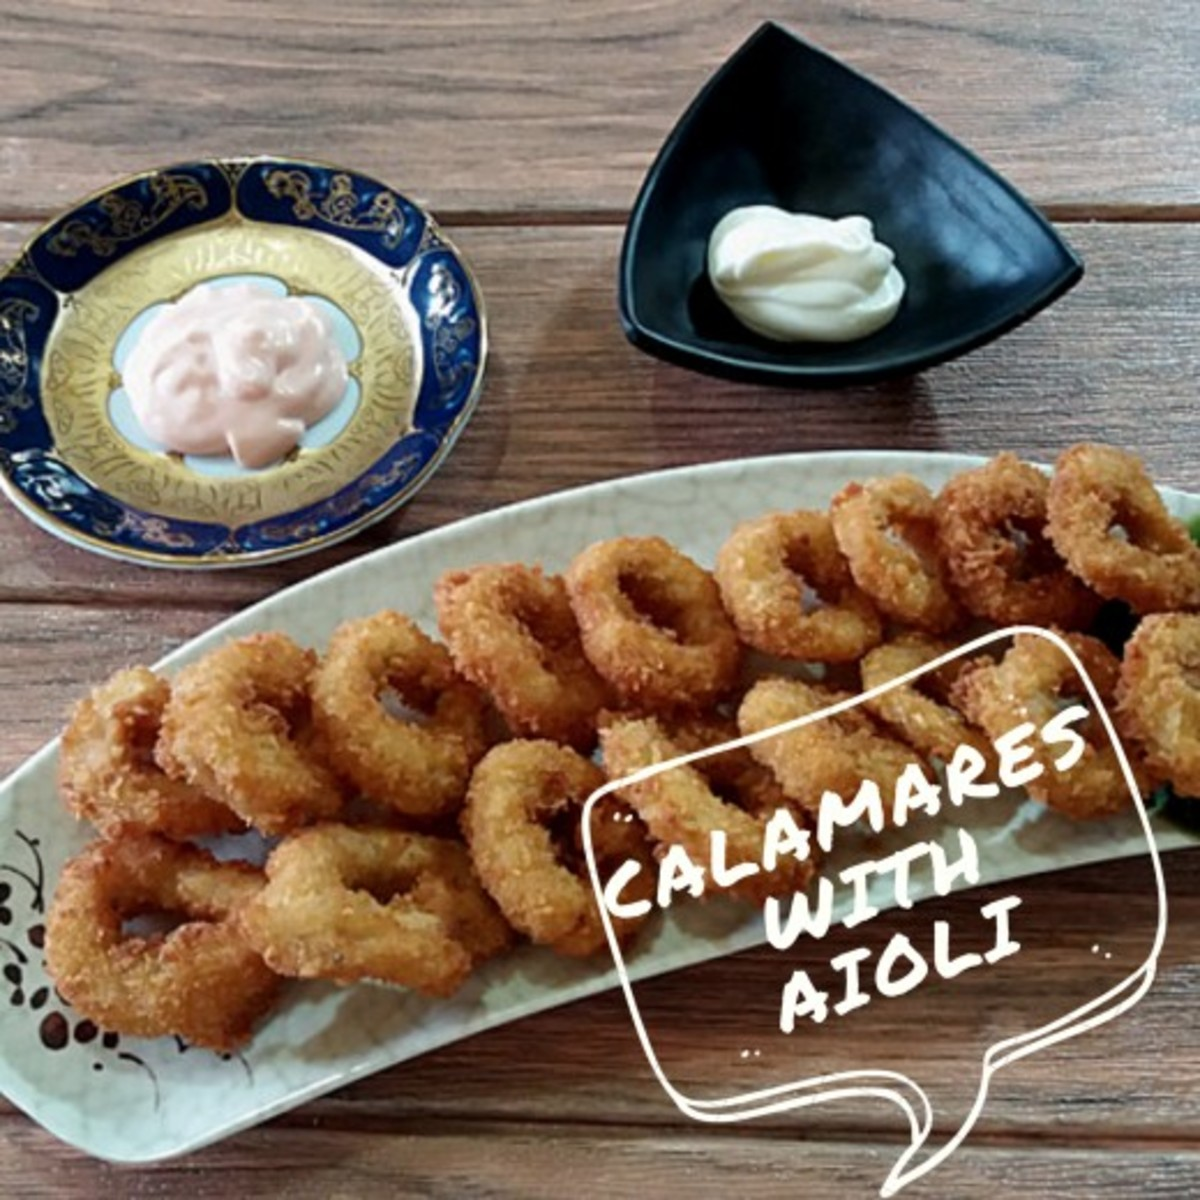 Calamares fritos makes a fantastic appetizer, especially when served with a delicious aioli.